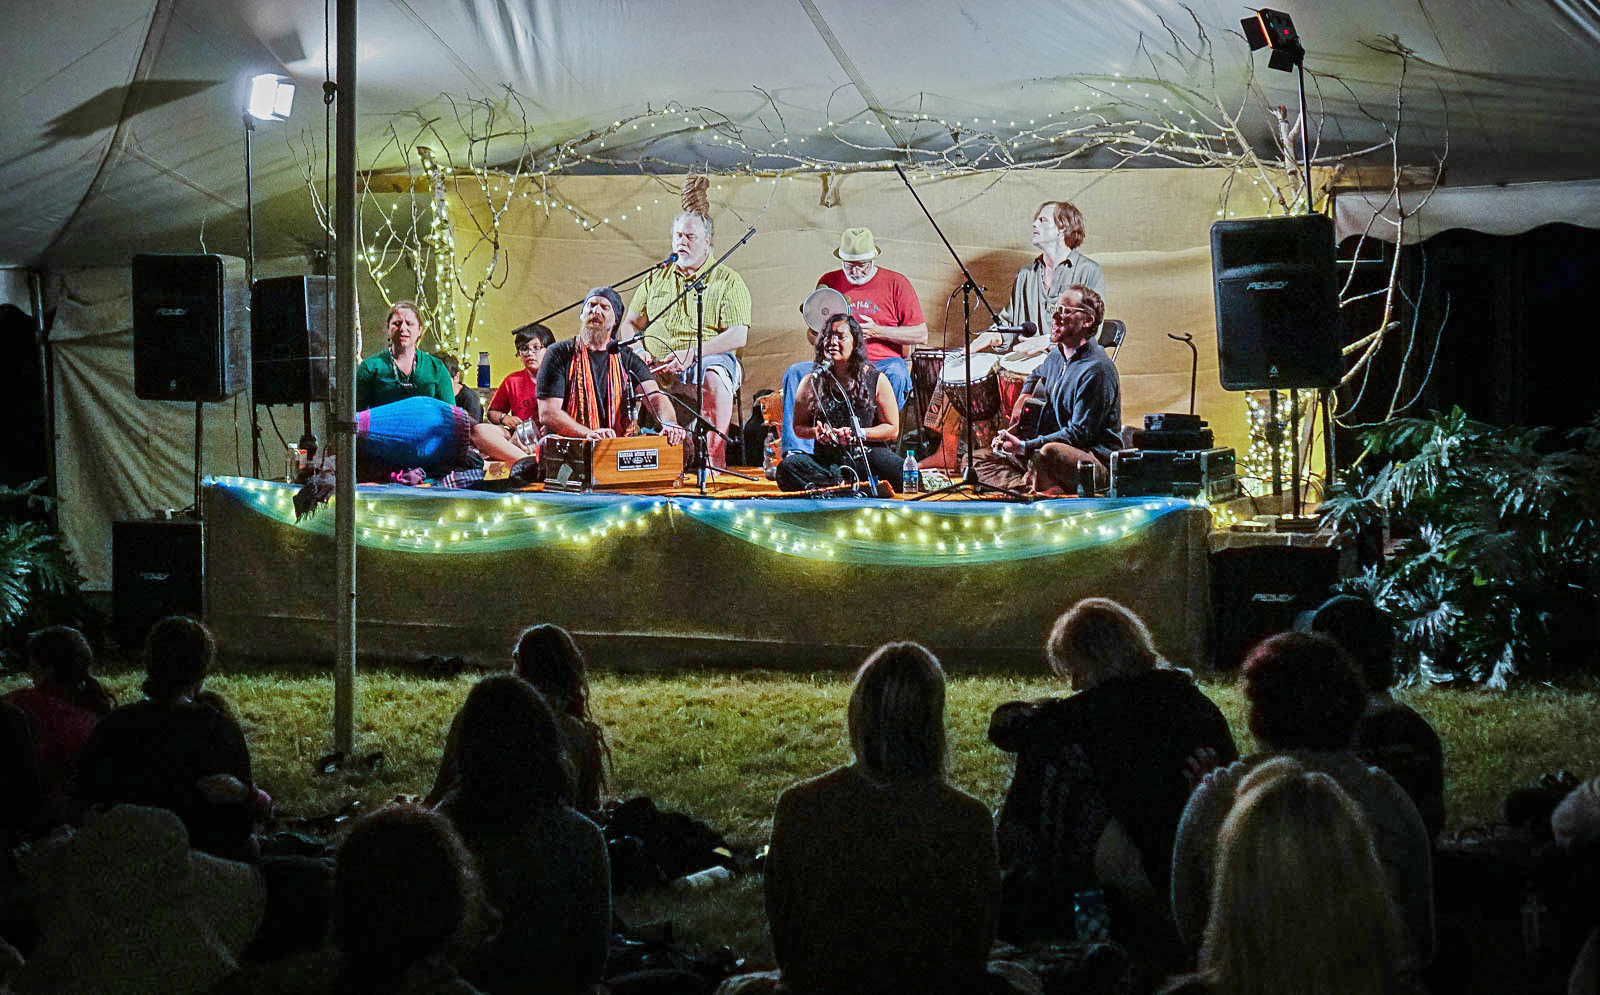 A spirited and soulful evening of Community Kirtan headlines the YogaFest Main Stage during opening night of YogaFest 2017.